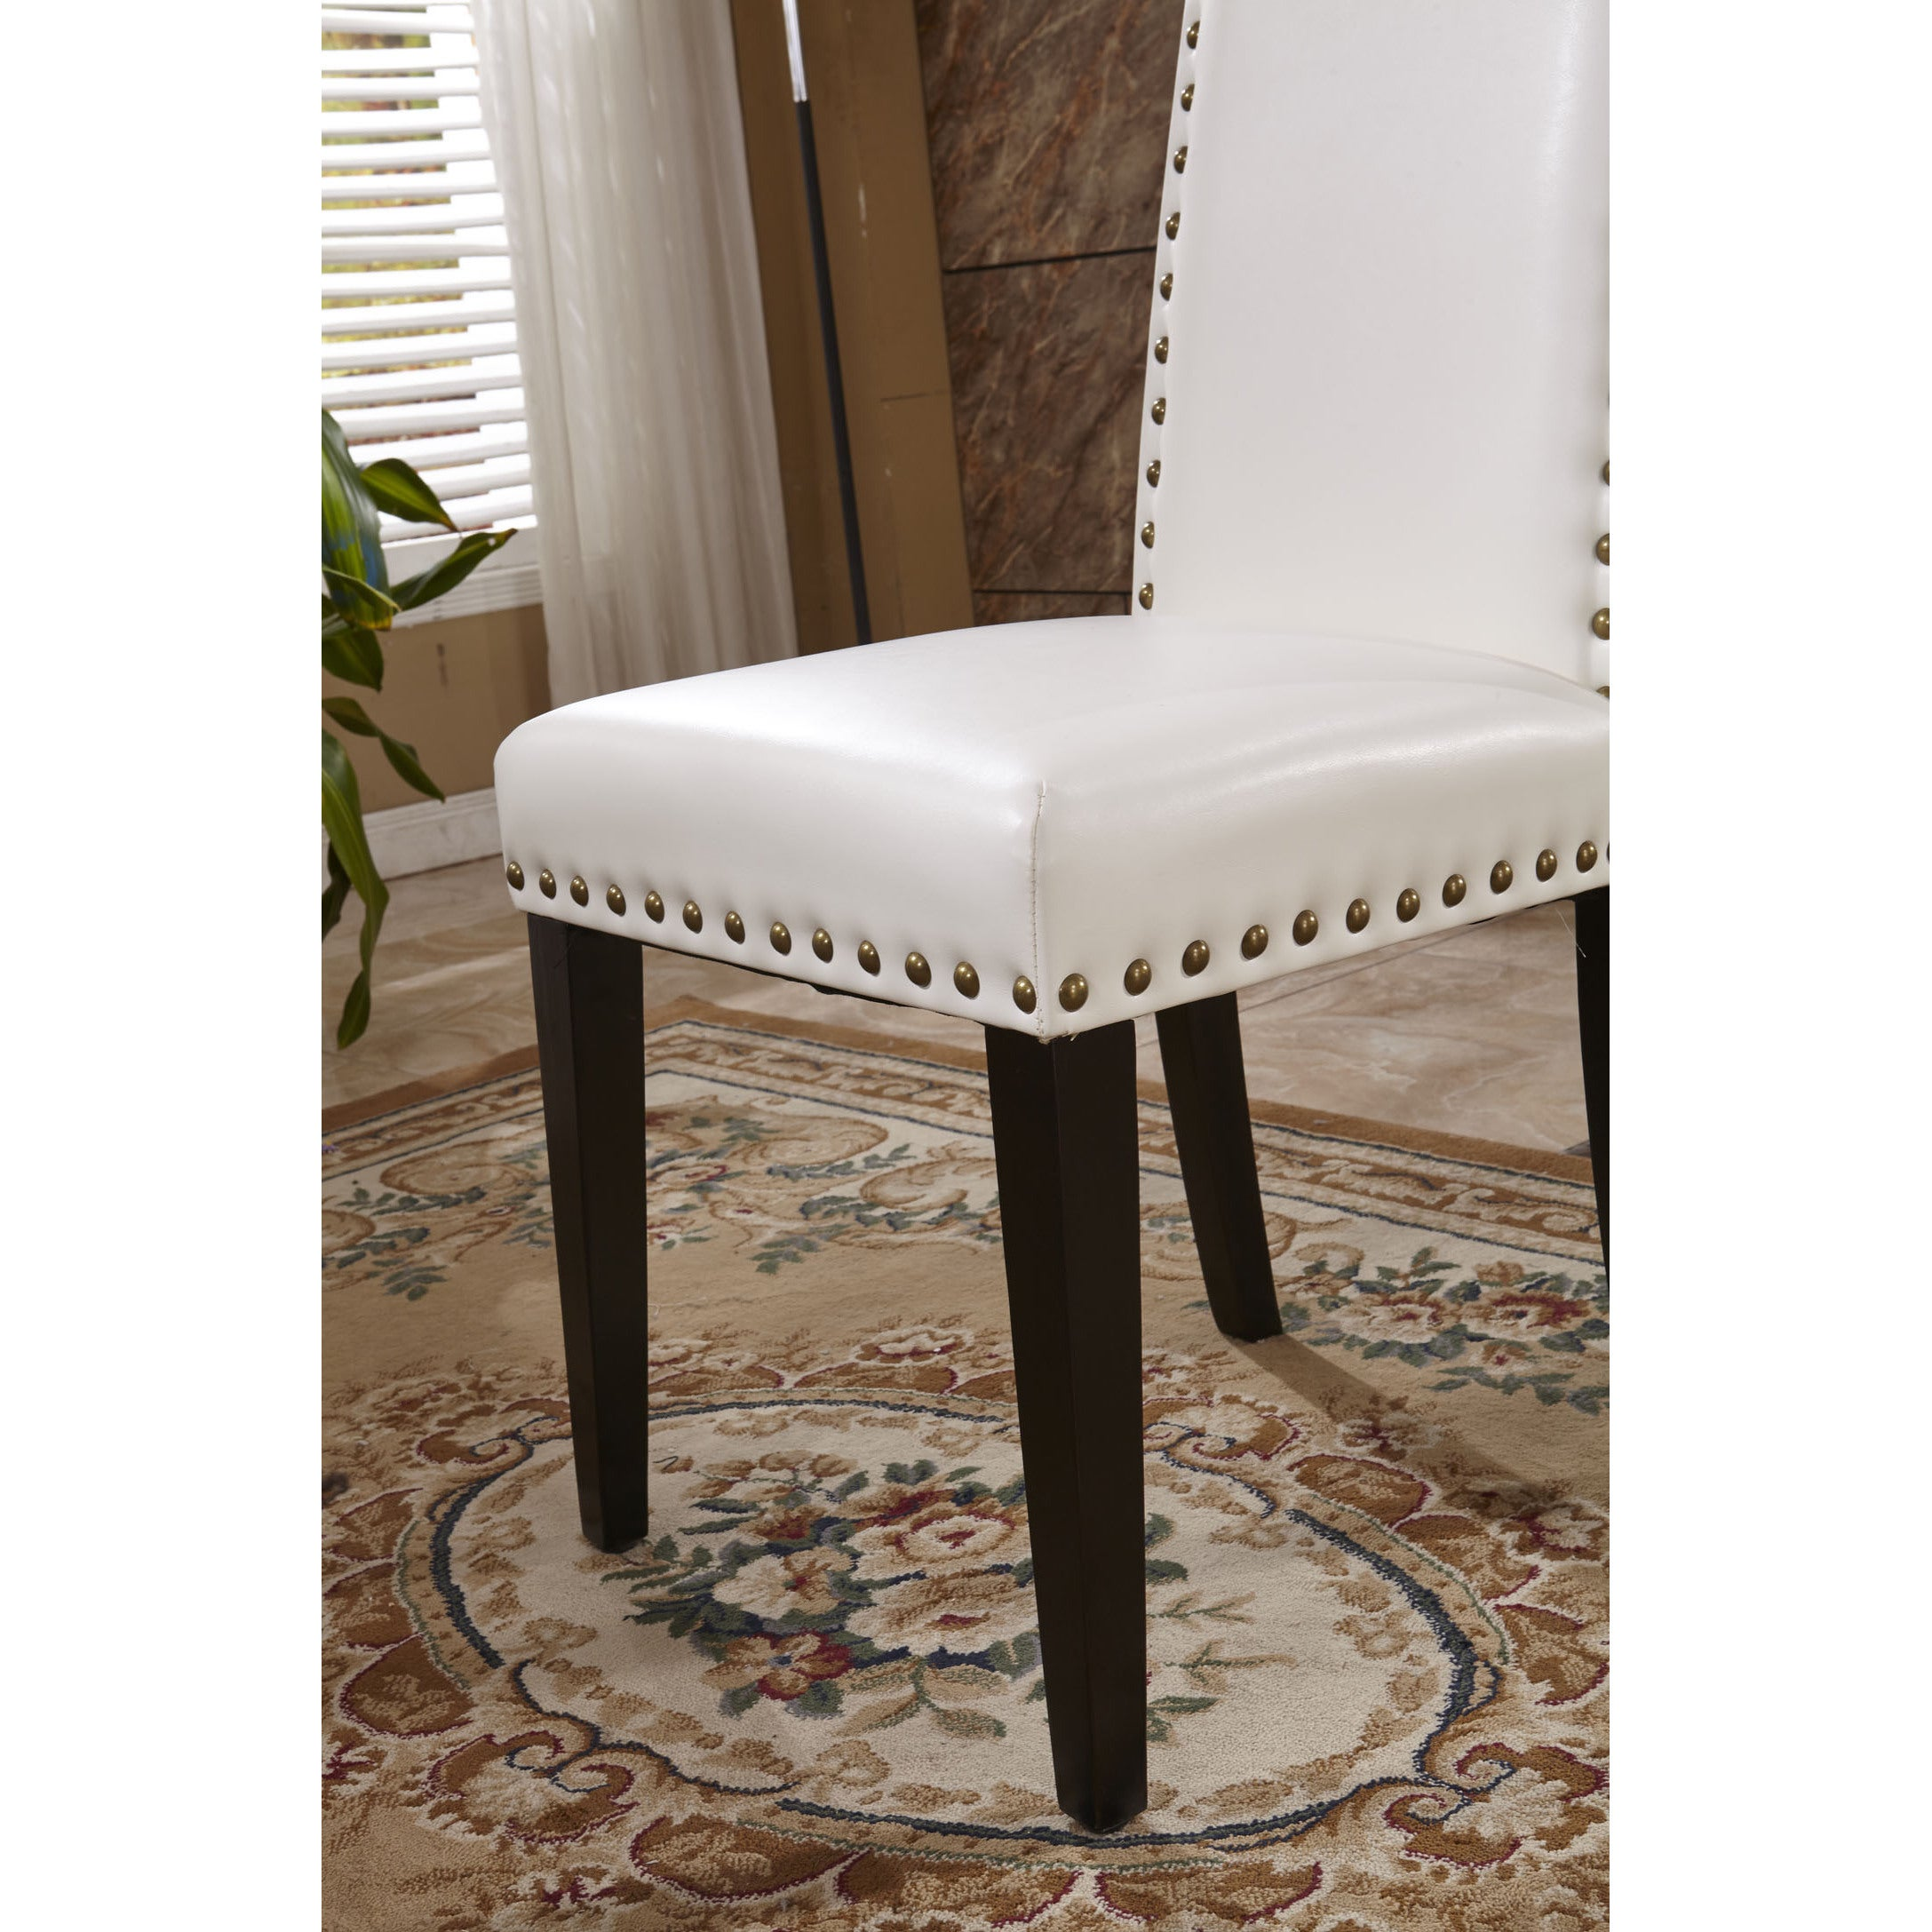 Clic Faux Leather Parson Chairs With Nailhead Trim Set Of 2 On Free Shipping Today 9972850